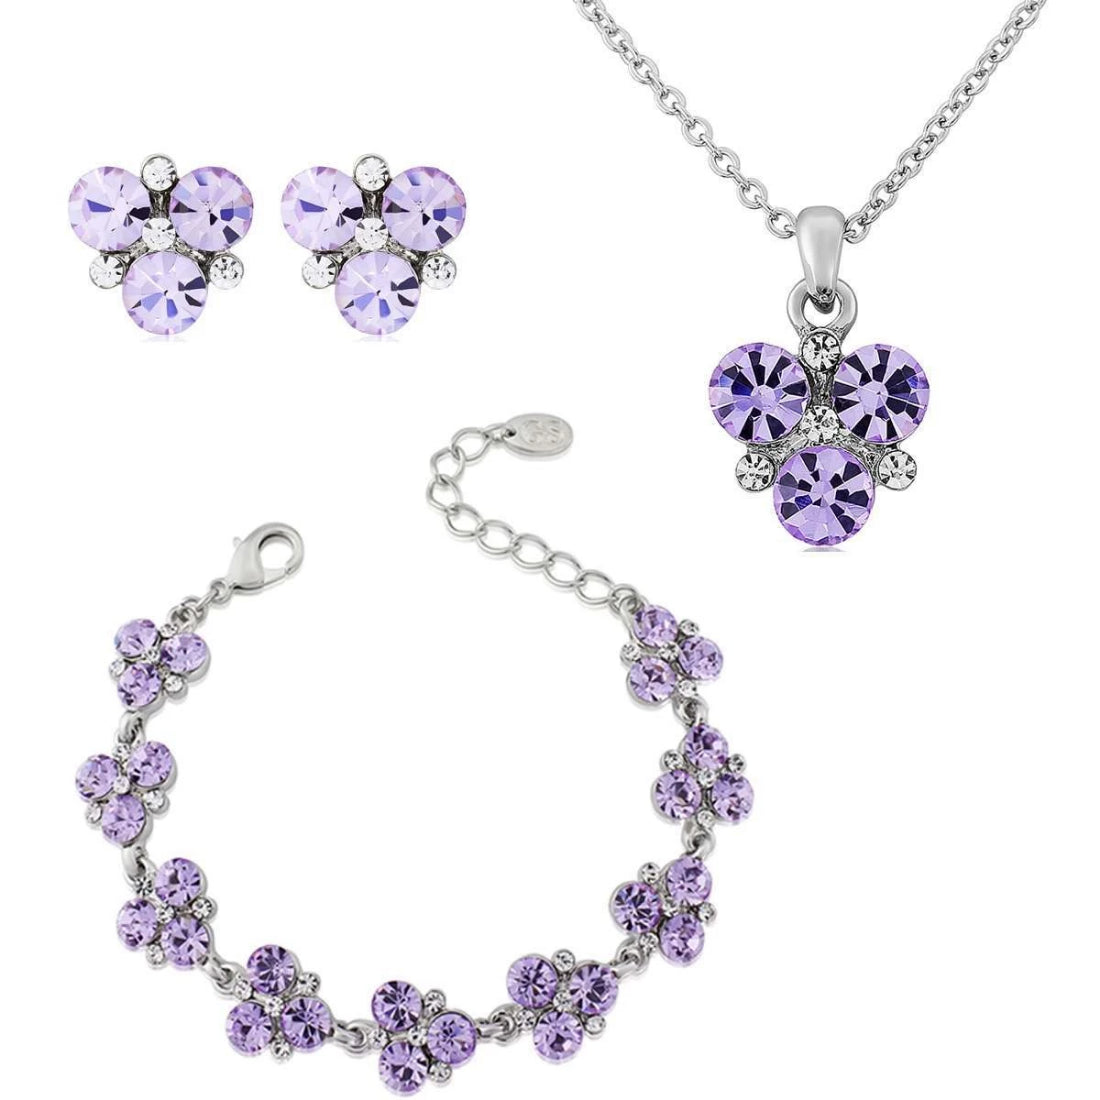 Allure of Lavender Jewellery Set